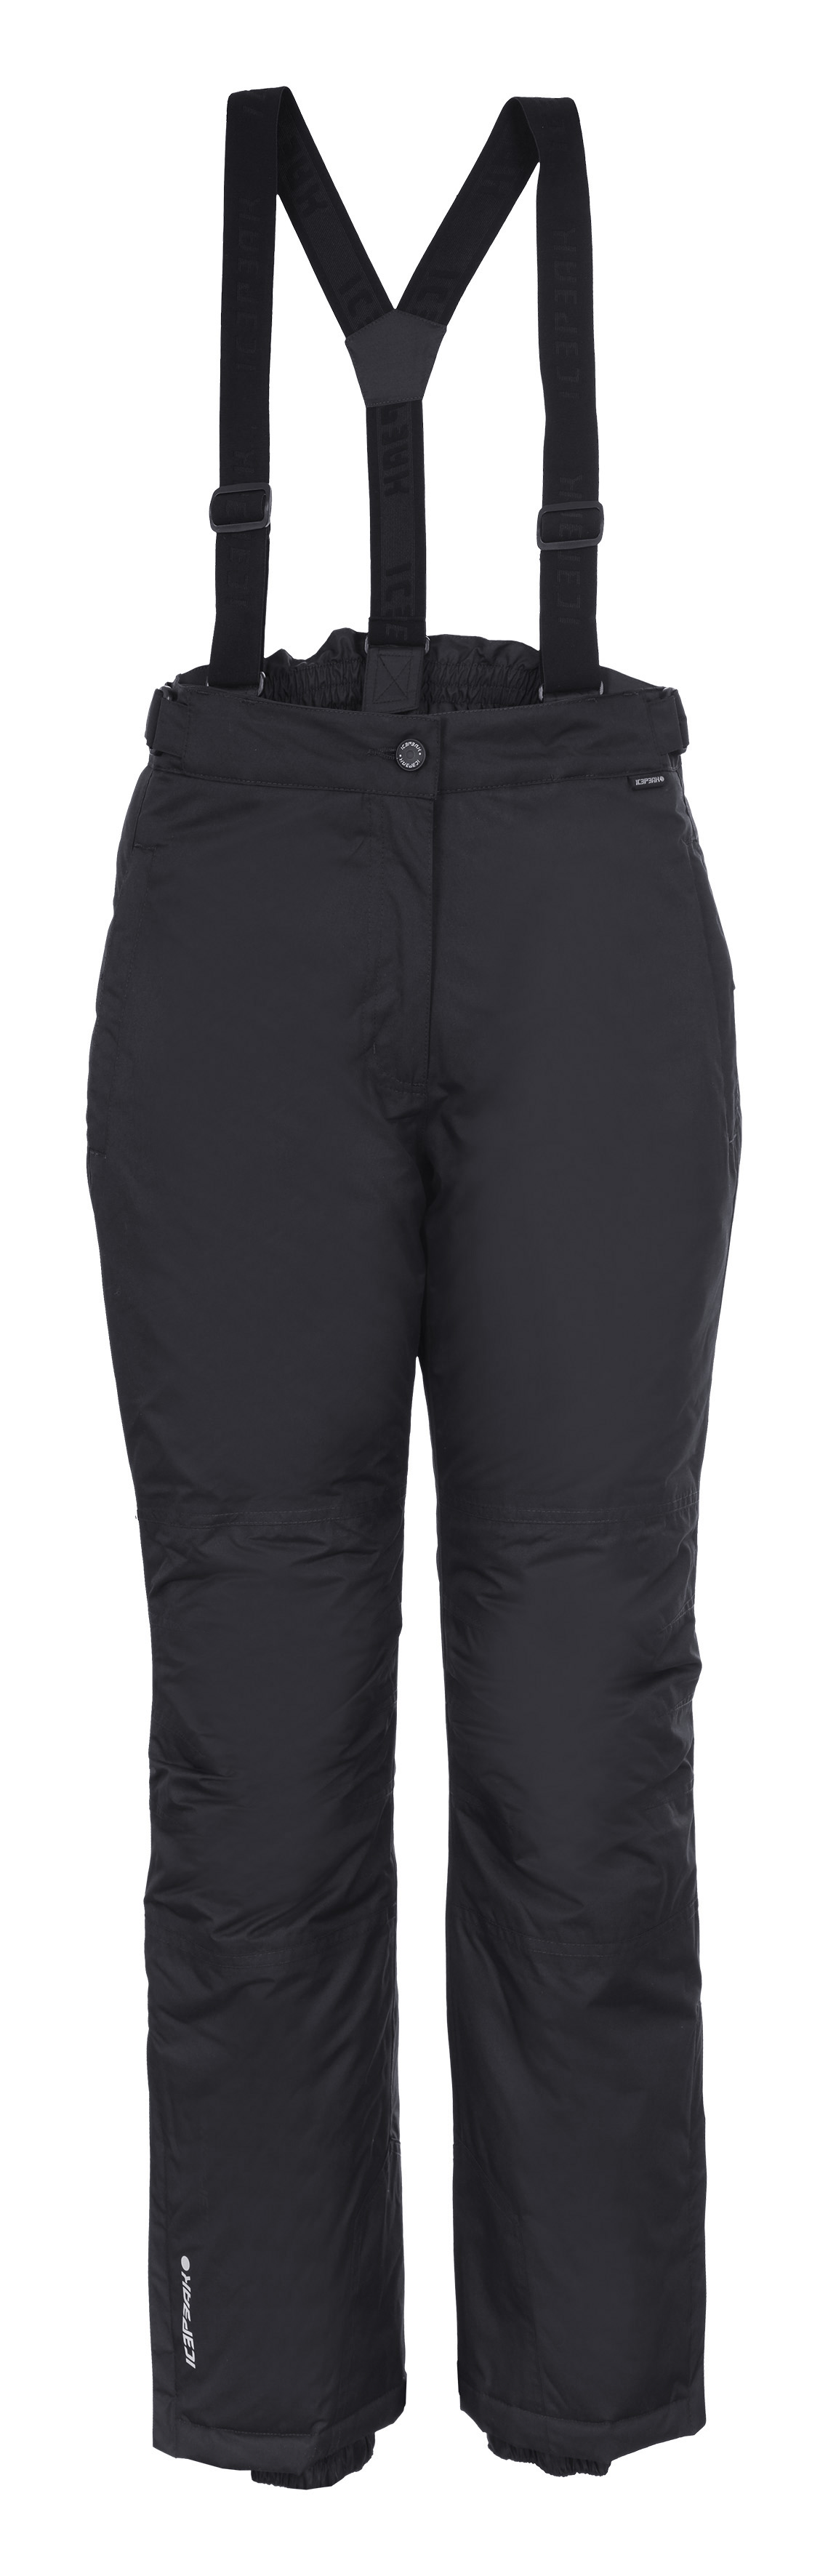 Icepeak Trudy Wintersport Broek Dames